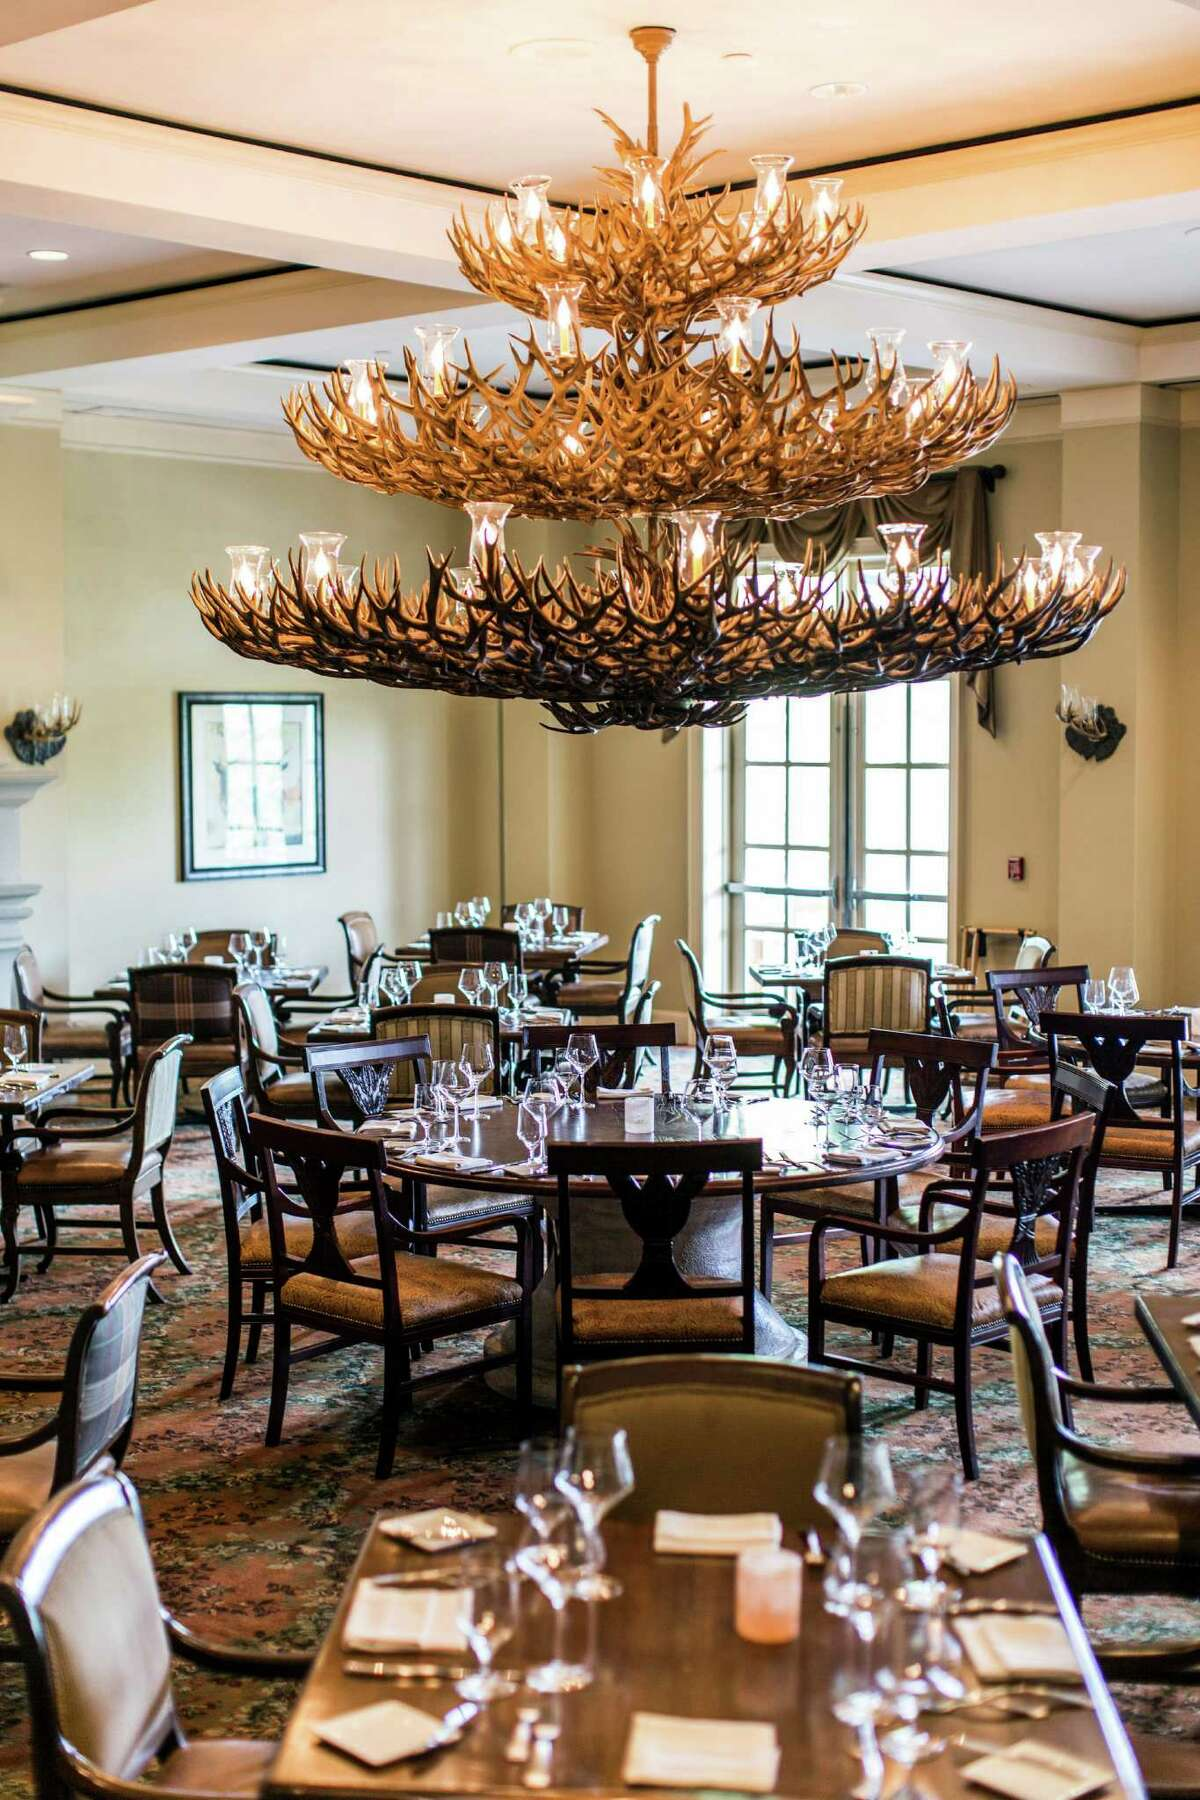 Antlers Lodge in Hyatt Regency Hill Country Resort and Spa: 9800 Hyatt Resort Drive, 210-520-4001, antlerslodgerestaurant.com, will serve a Valentine's Dinner, Feb. 12-14, 5:30-10 p.m. $75, add $50 for wine pairings. Menu features choice of burrata or Italian chopped salad; choice of seafood linguine, pappardelle with wild boar ragu or gnocchi al telefono; choice of marinated New York strip steak, venison osso buco or grilled snapper; and choice of frozen Champagne sabayon or chocolate tiramisu. Hotel packages also available.